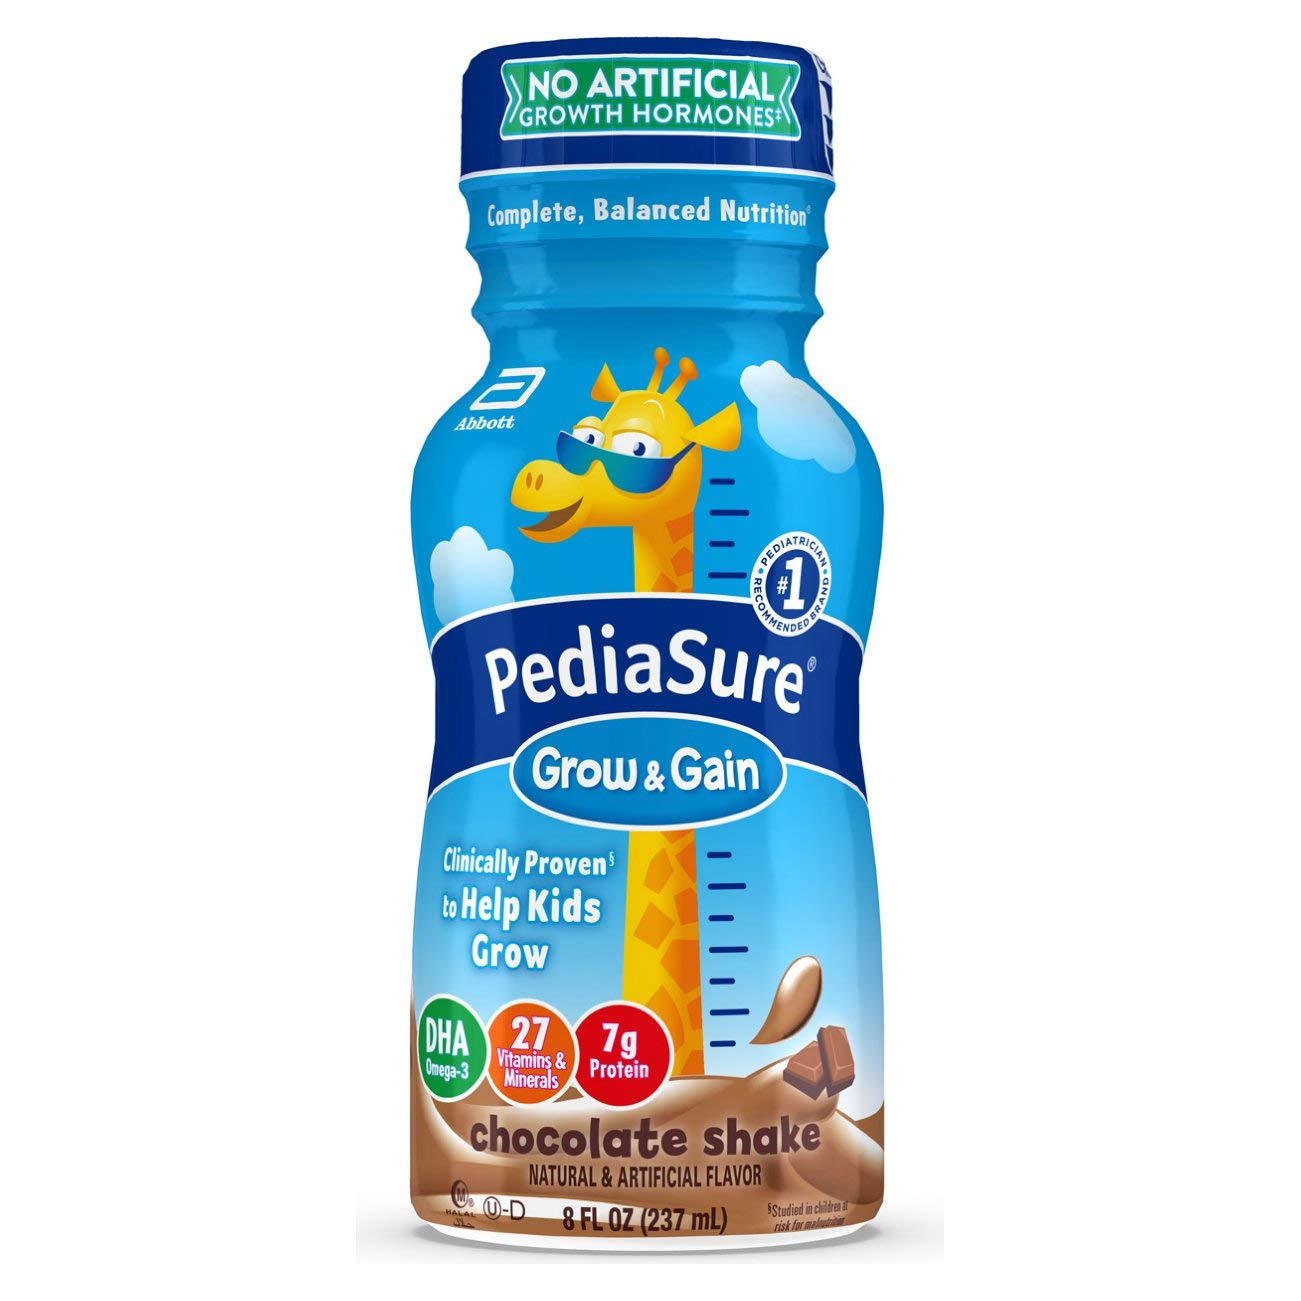 PediaSure Grow & Gain Kids Nutritional Shake, with Protein, DHA, and Vitamins & Minerals, Chocolate, 8 fl oz, 6 Count